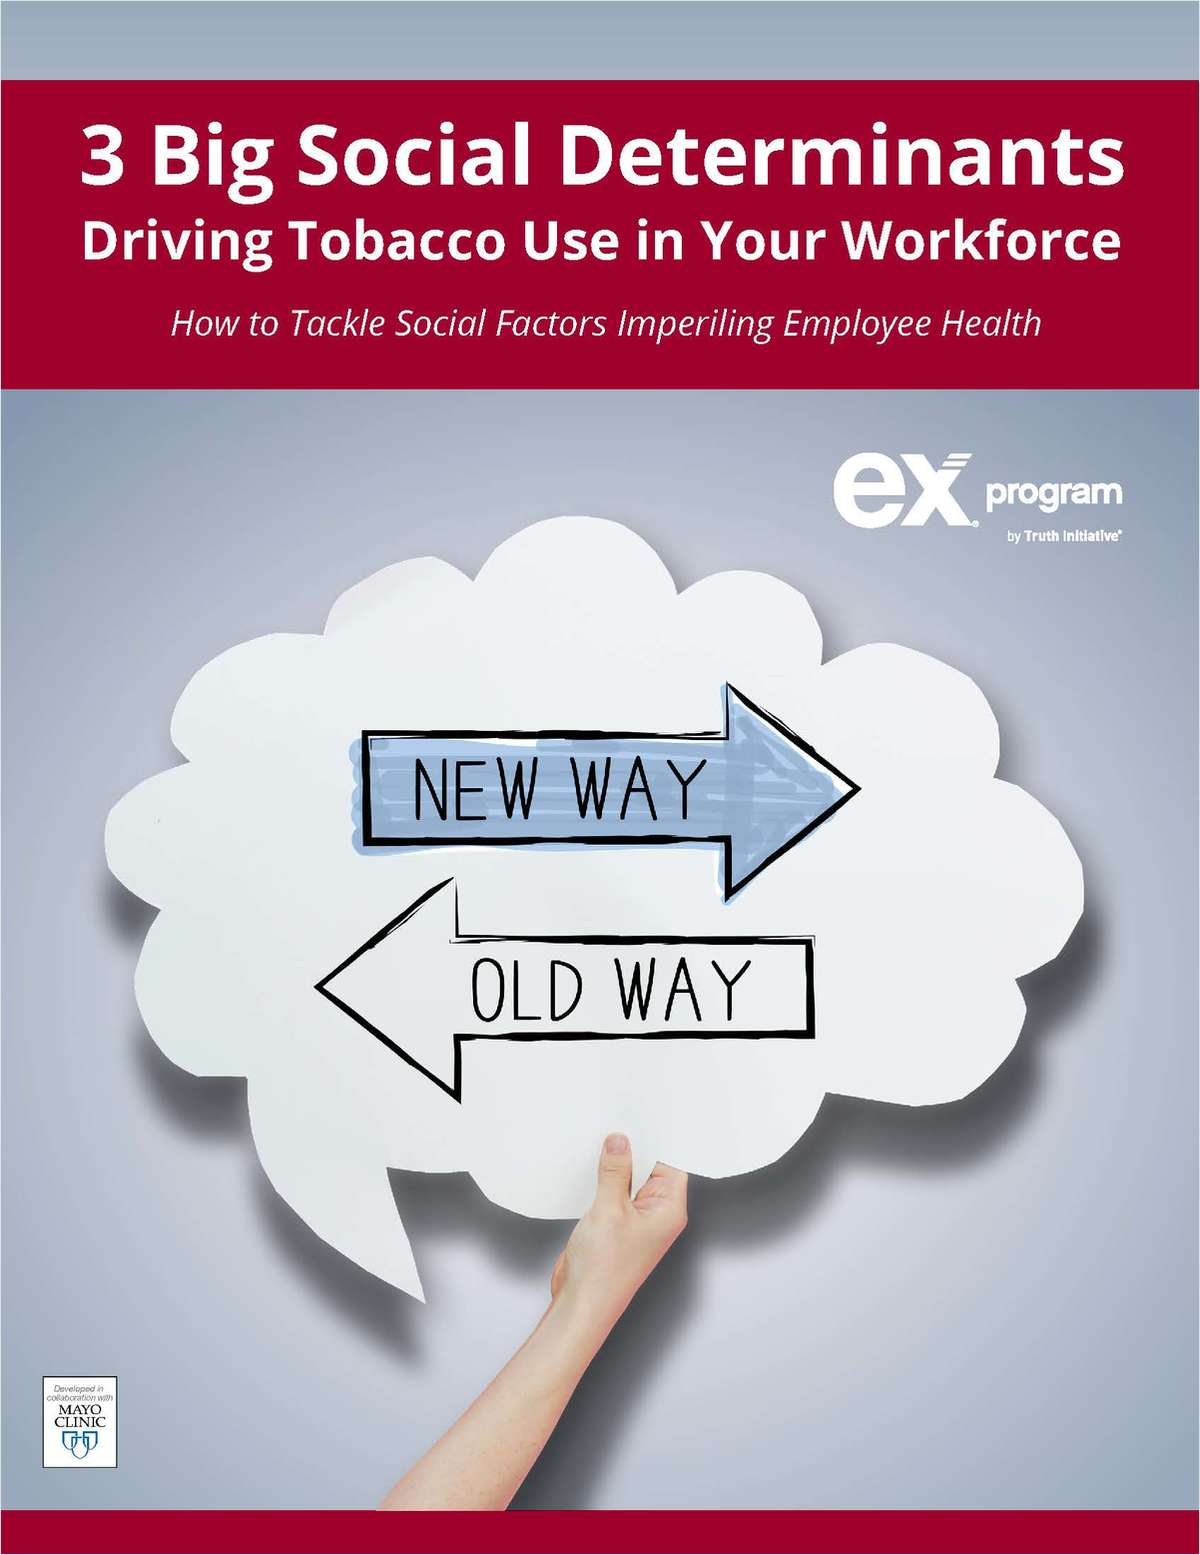 3 Big Social Determinants Driving Tobacco Use in Your Workforce